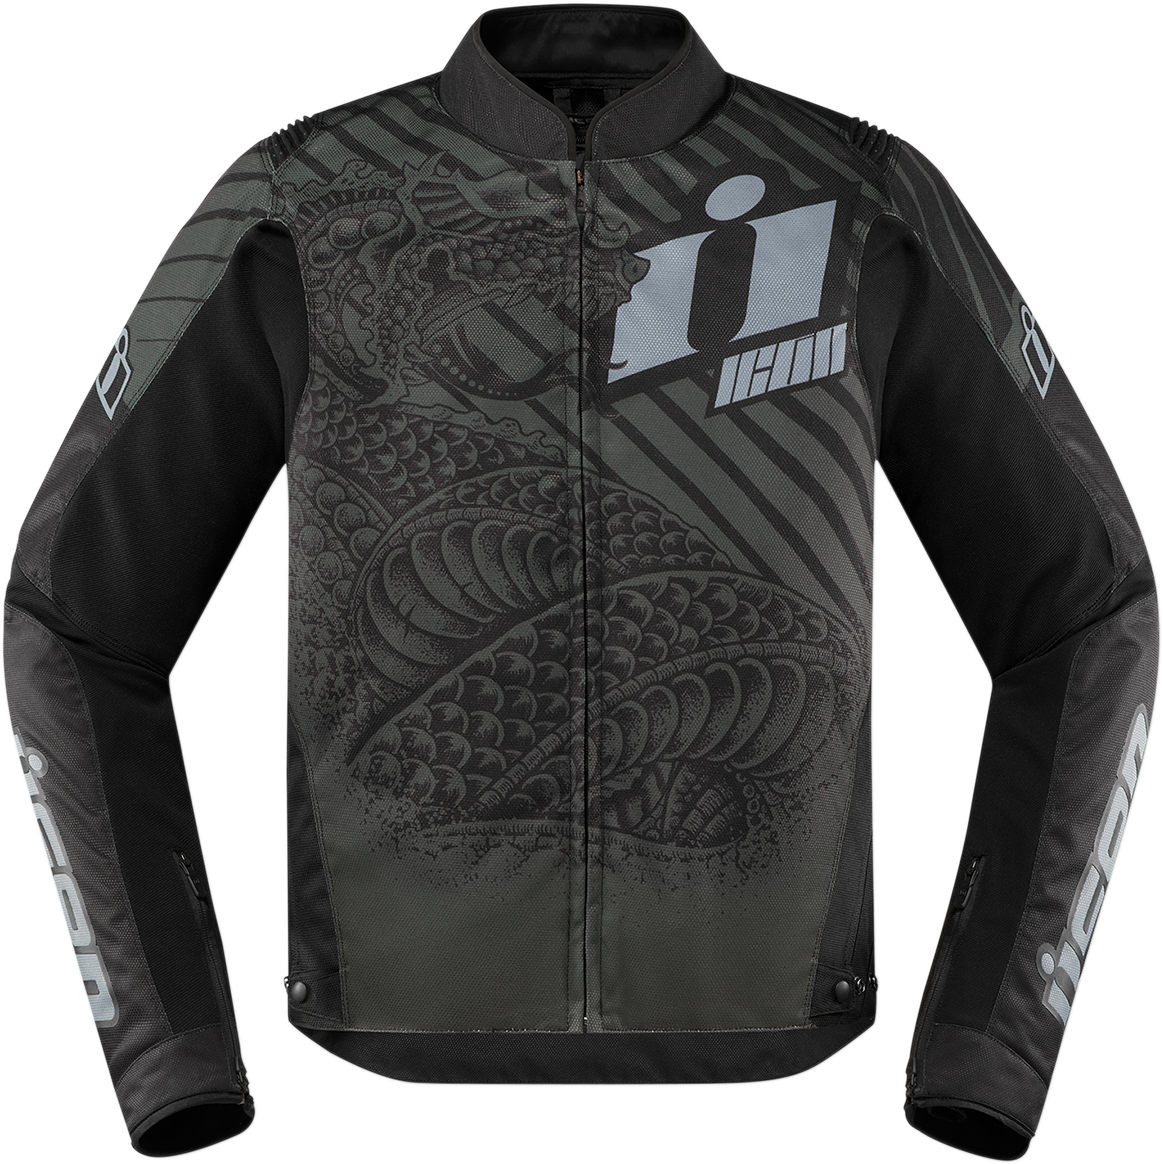 Icon Mens Zip Up Overlord SB2 Serpecant Motorcycle Riding Street Racing Jacket